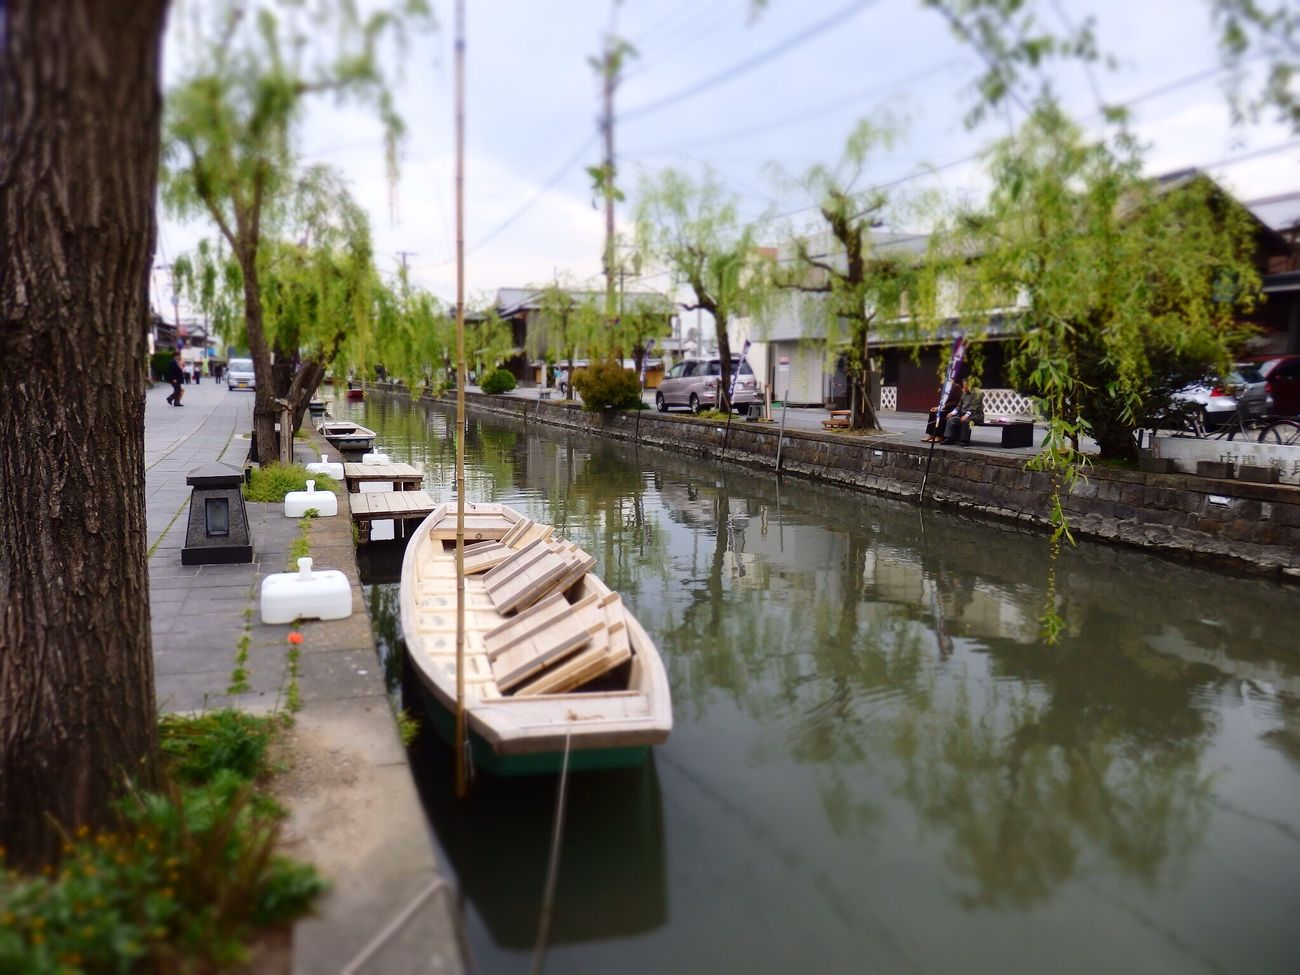 Tokyo,Japan Japan Photography Japan Photos Japanese Style Japan Hakata 日本 柳川 River Trip Japan Culture Cloud - Sky Tree Transportation Nautical Vessel Mode Of Transport Reflection Water Moored Outdoors Day Real People Nature Architecture Sky